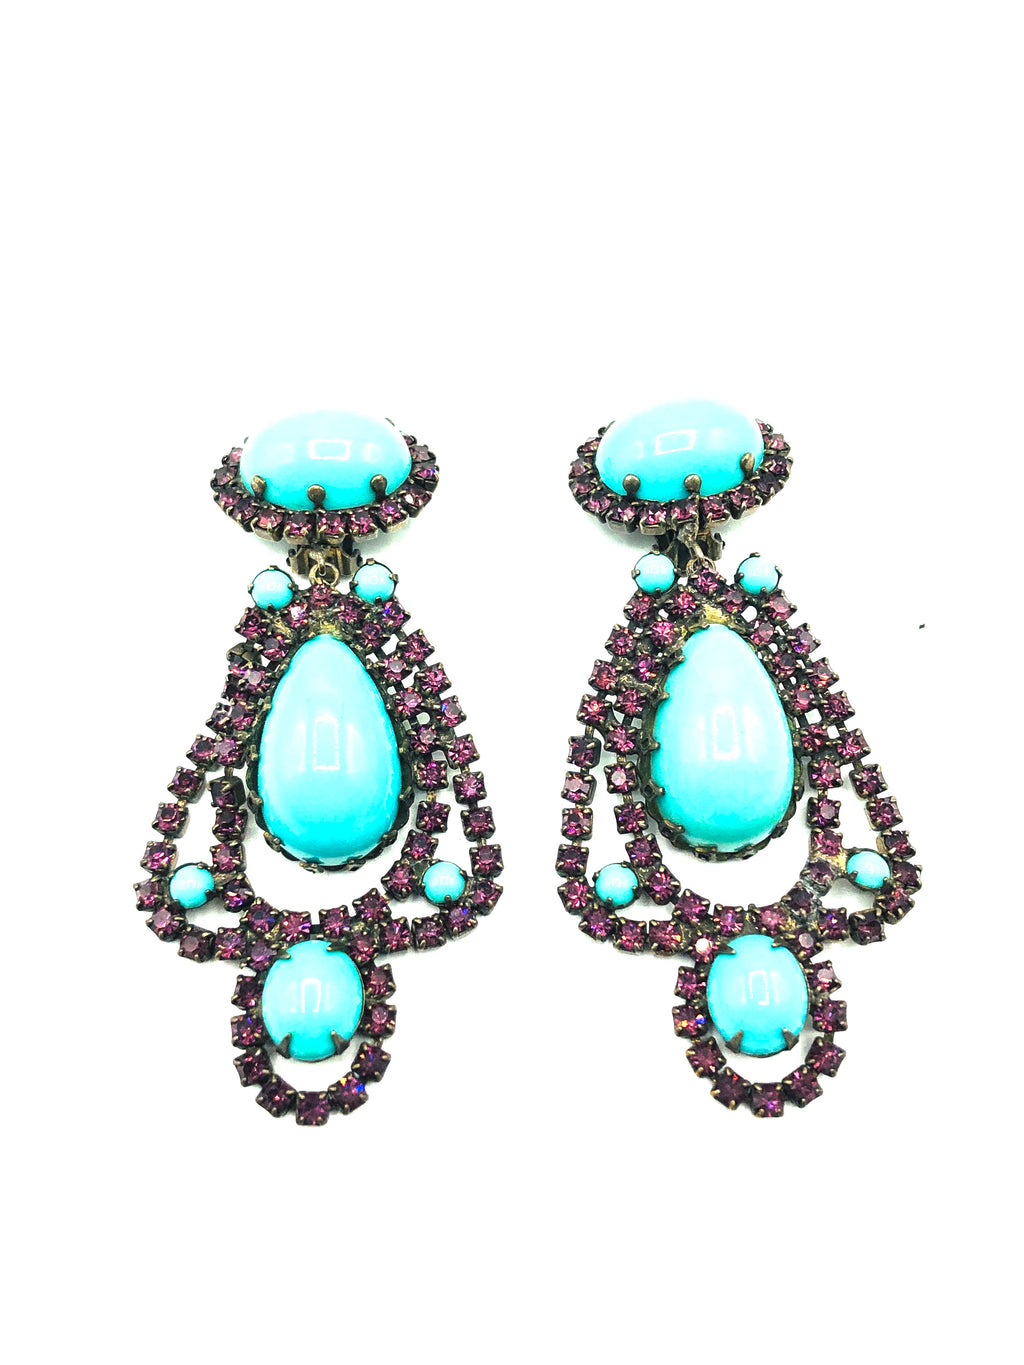 Kenneth Jay Lane 60s Turquoise and purple Chandelier Earrings 1 OF 4